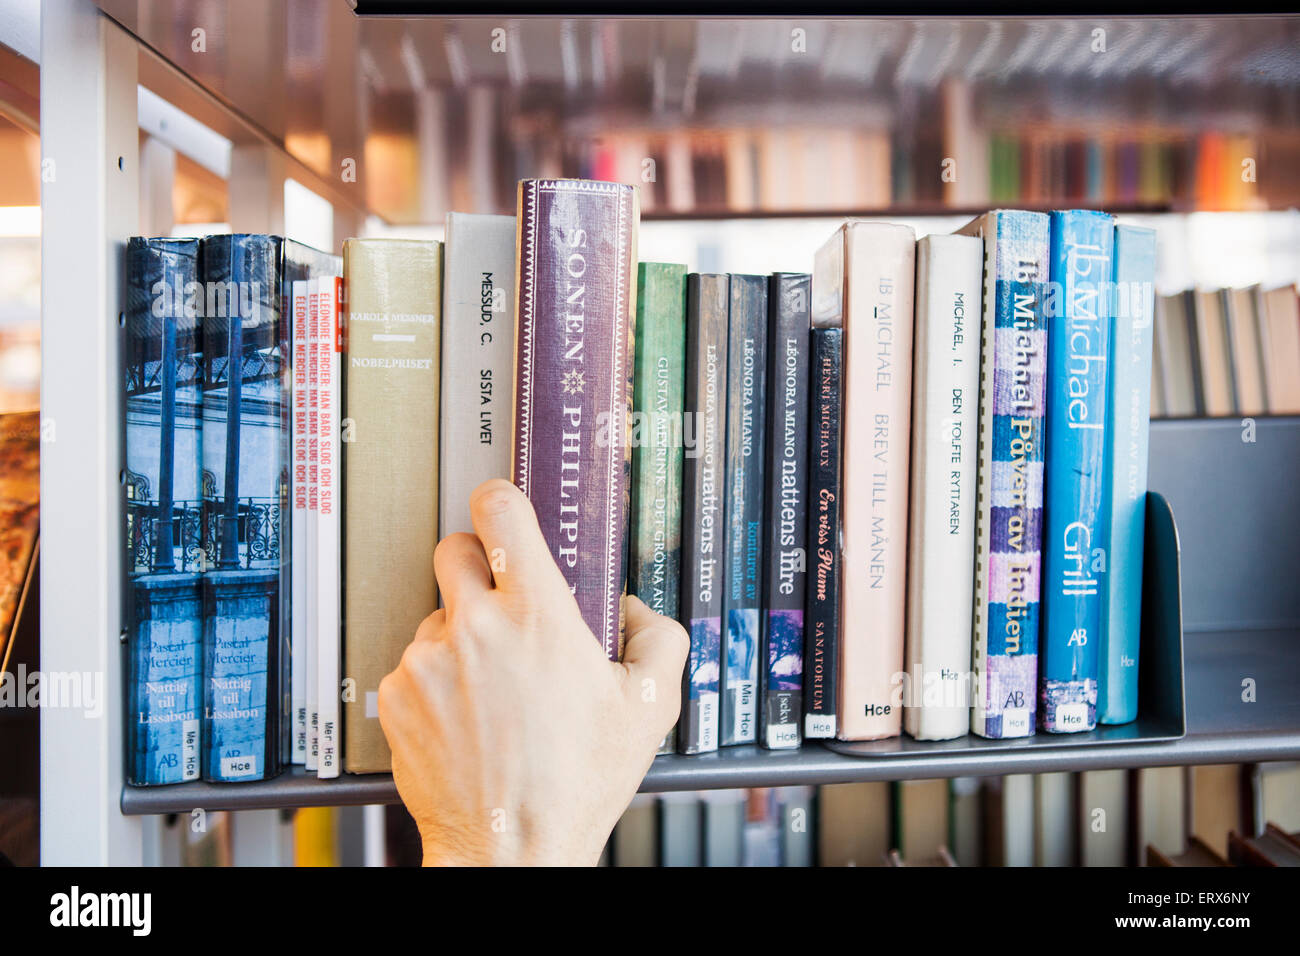 Cropped image of man's hand choosing book from shelf in library - Stock Image